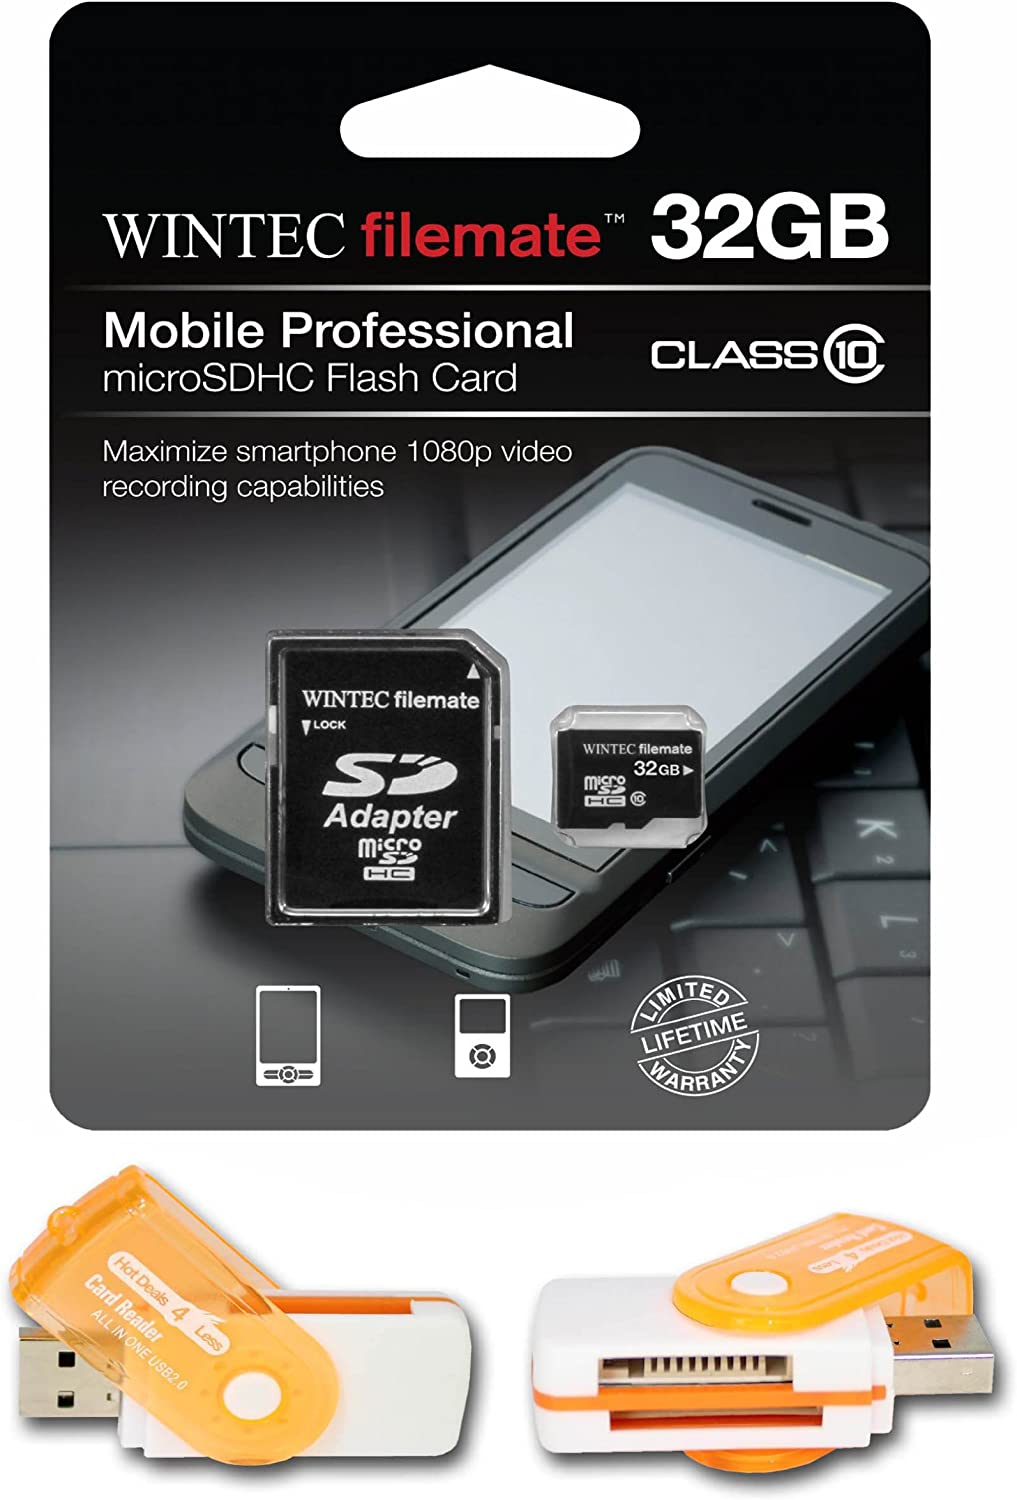 Comes with. A free Hot Deals 4 Less High Speed all in one Card Reader is included 32GB MicroSDHC Class 10 High Speed Memory Card Perfect Fit For Samsung Solstice SGH-A887 U460 Intensity II